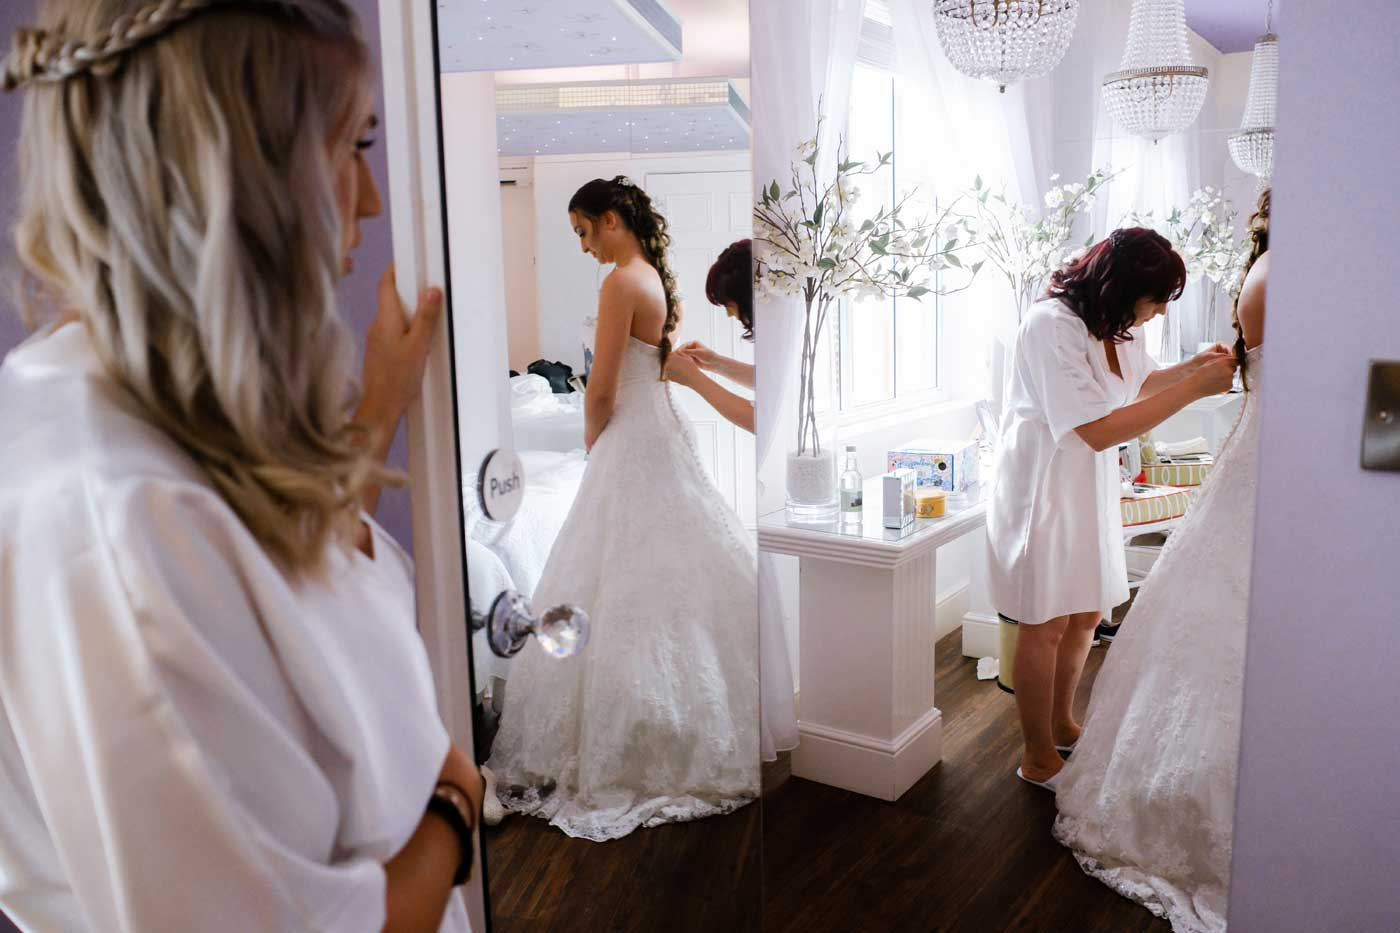 Bride in reflection of mirror while getting ready in The Orchard Suite at Rowton Castle